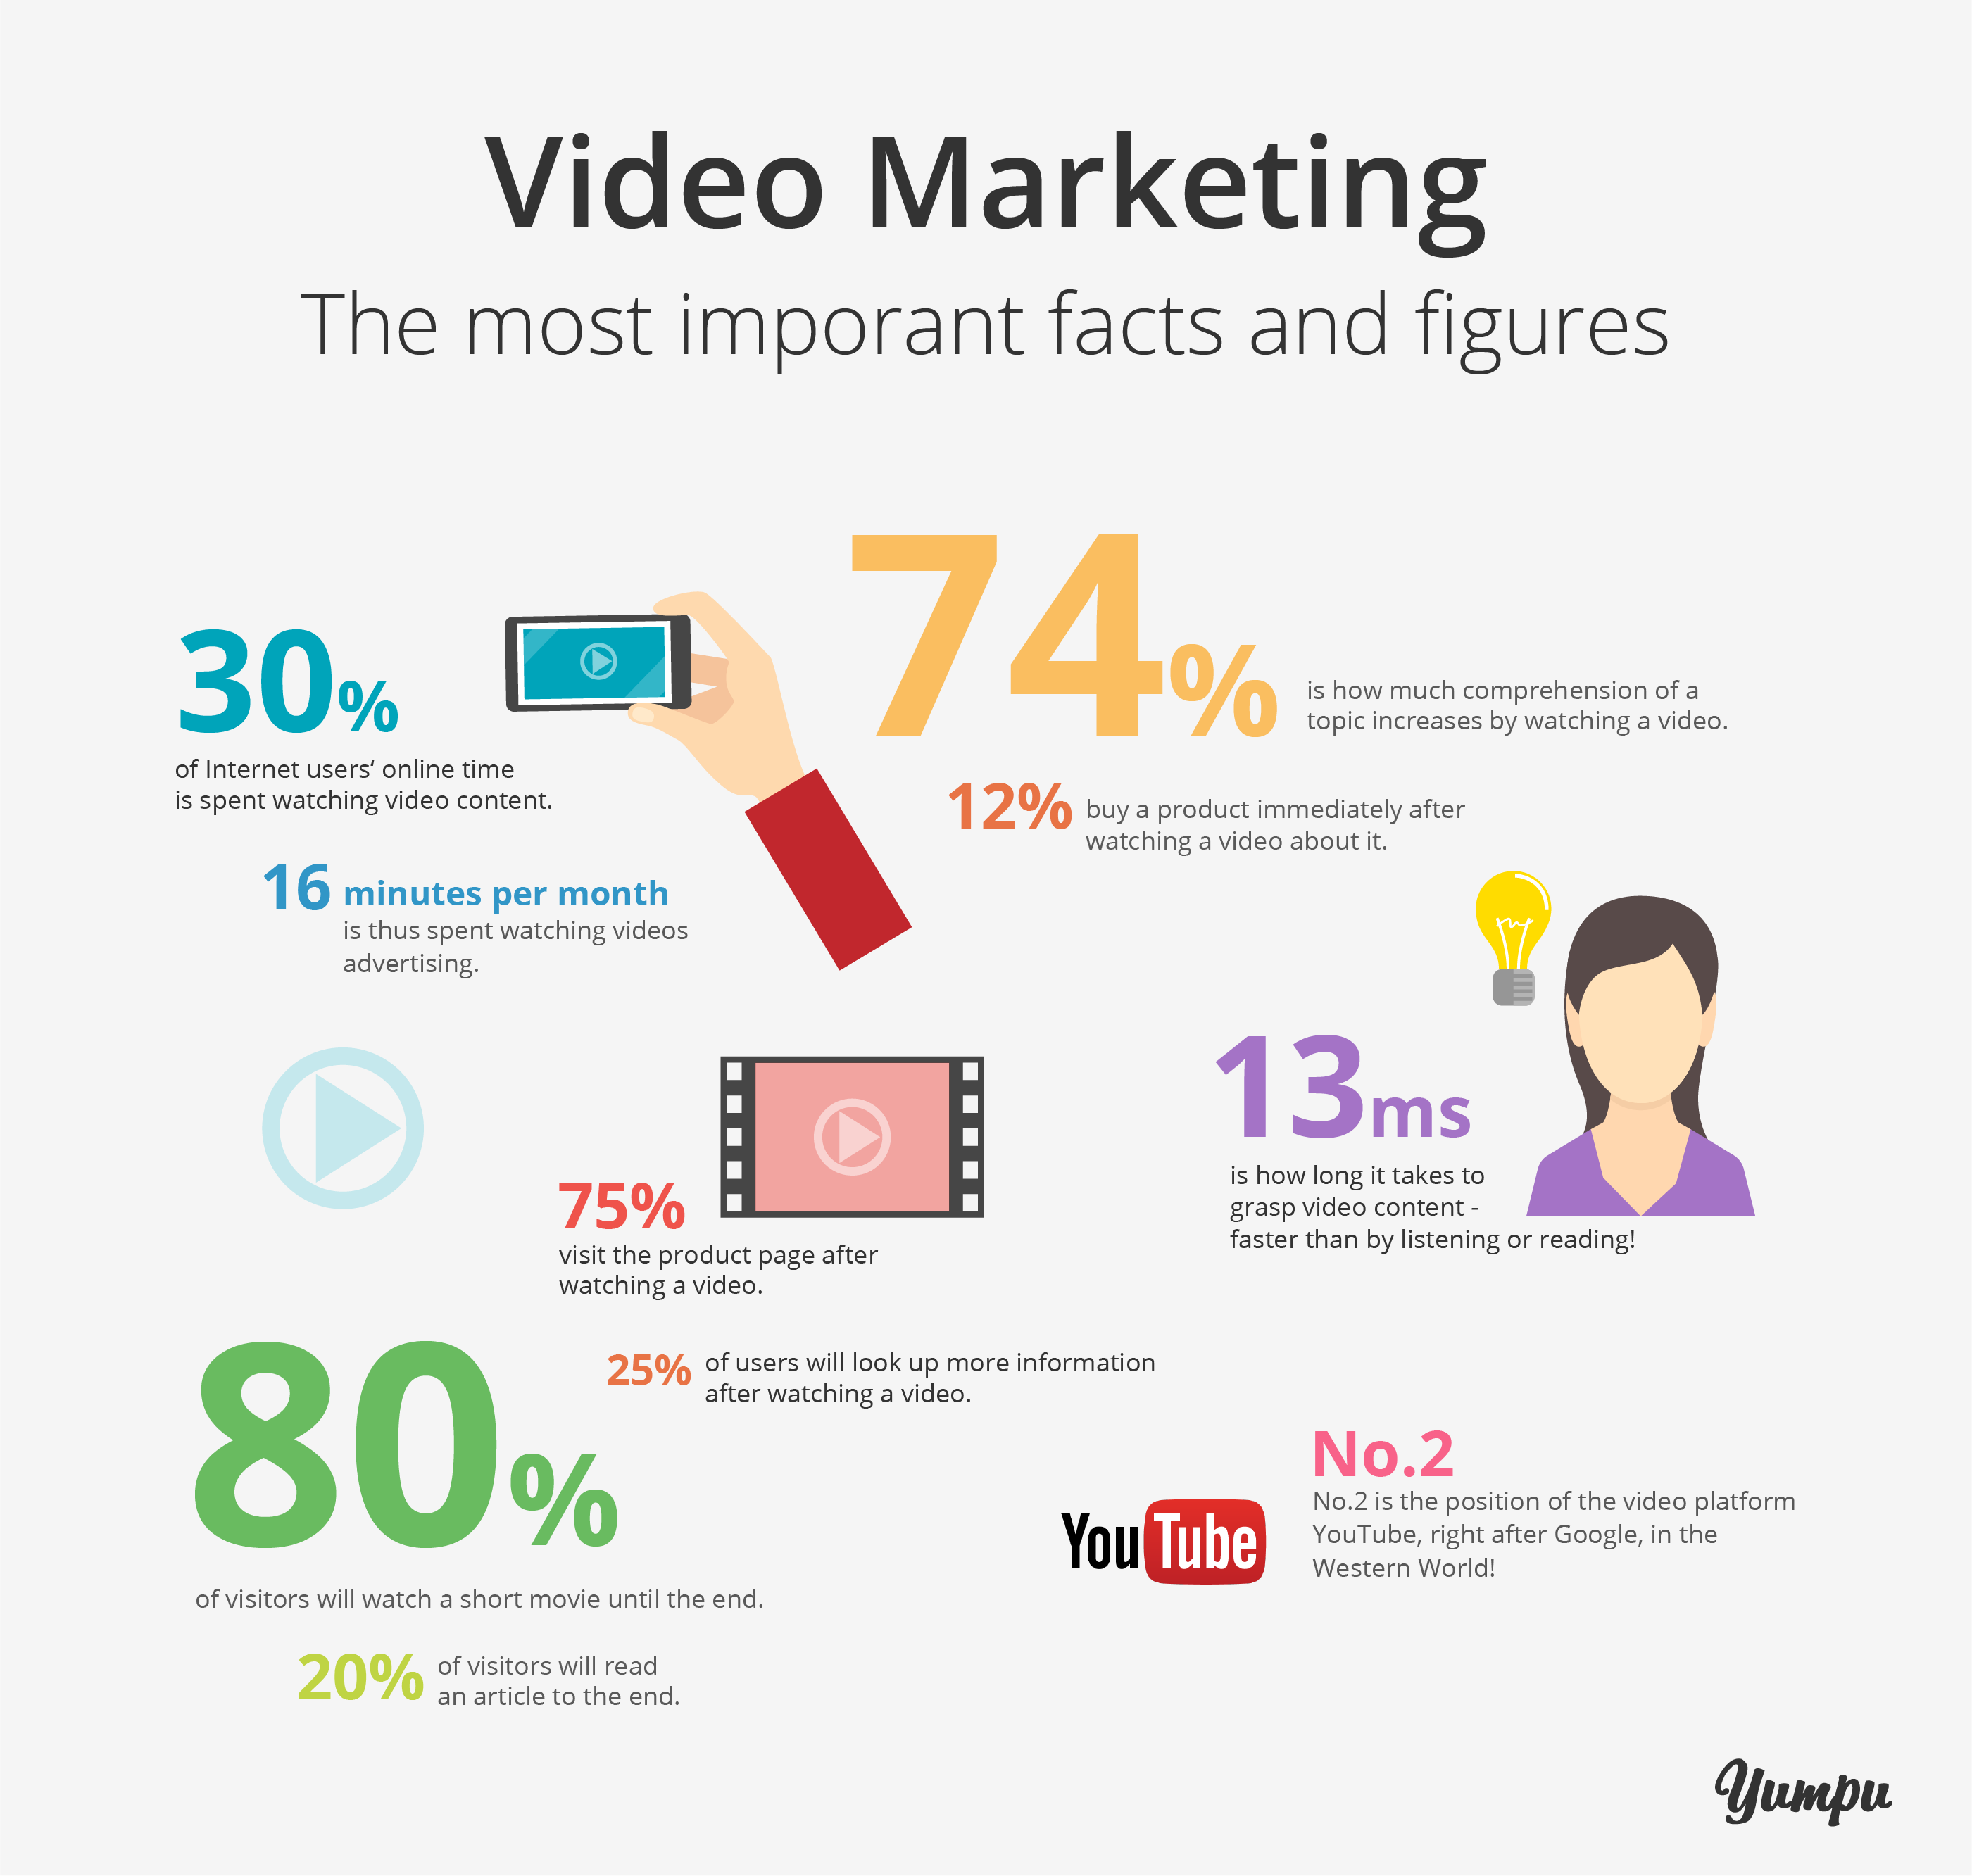 The most important facts and figures about video marketing